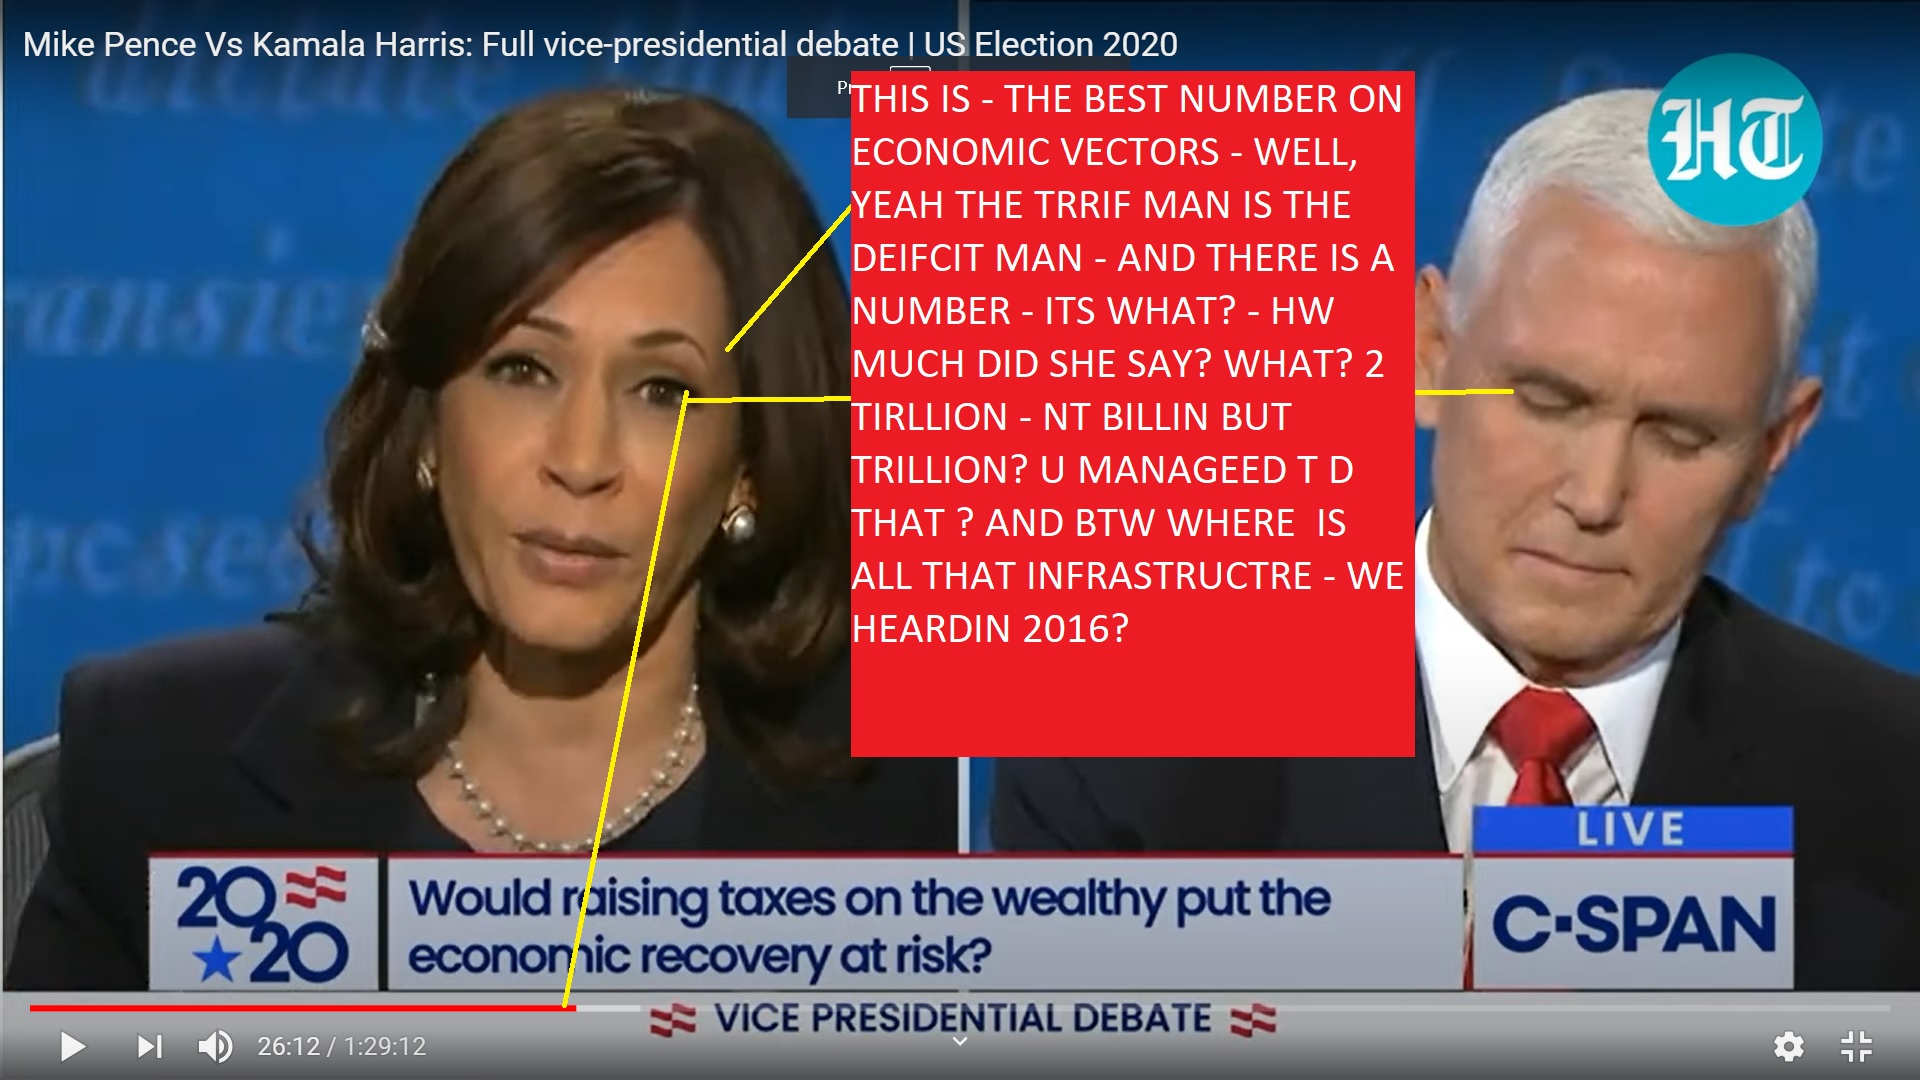 KAMALA HARRIS MIKE PENCE SUBJECT ECONMY - TAXES AND TARRIFS AND DEFICIST - BESAILLY TAX CUST - HAVE A COST AND THAT IS 2 TRILLIN IN DEFICIST